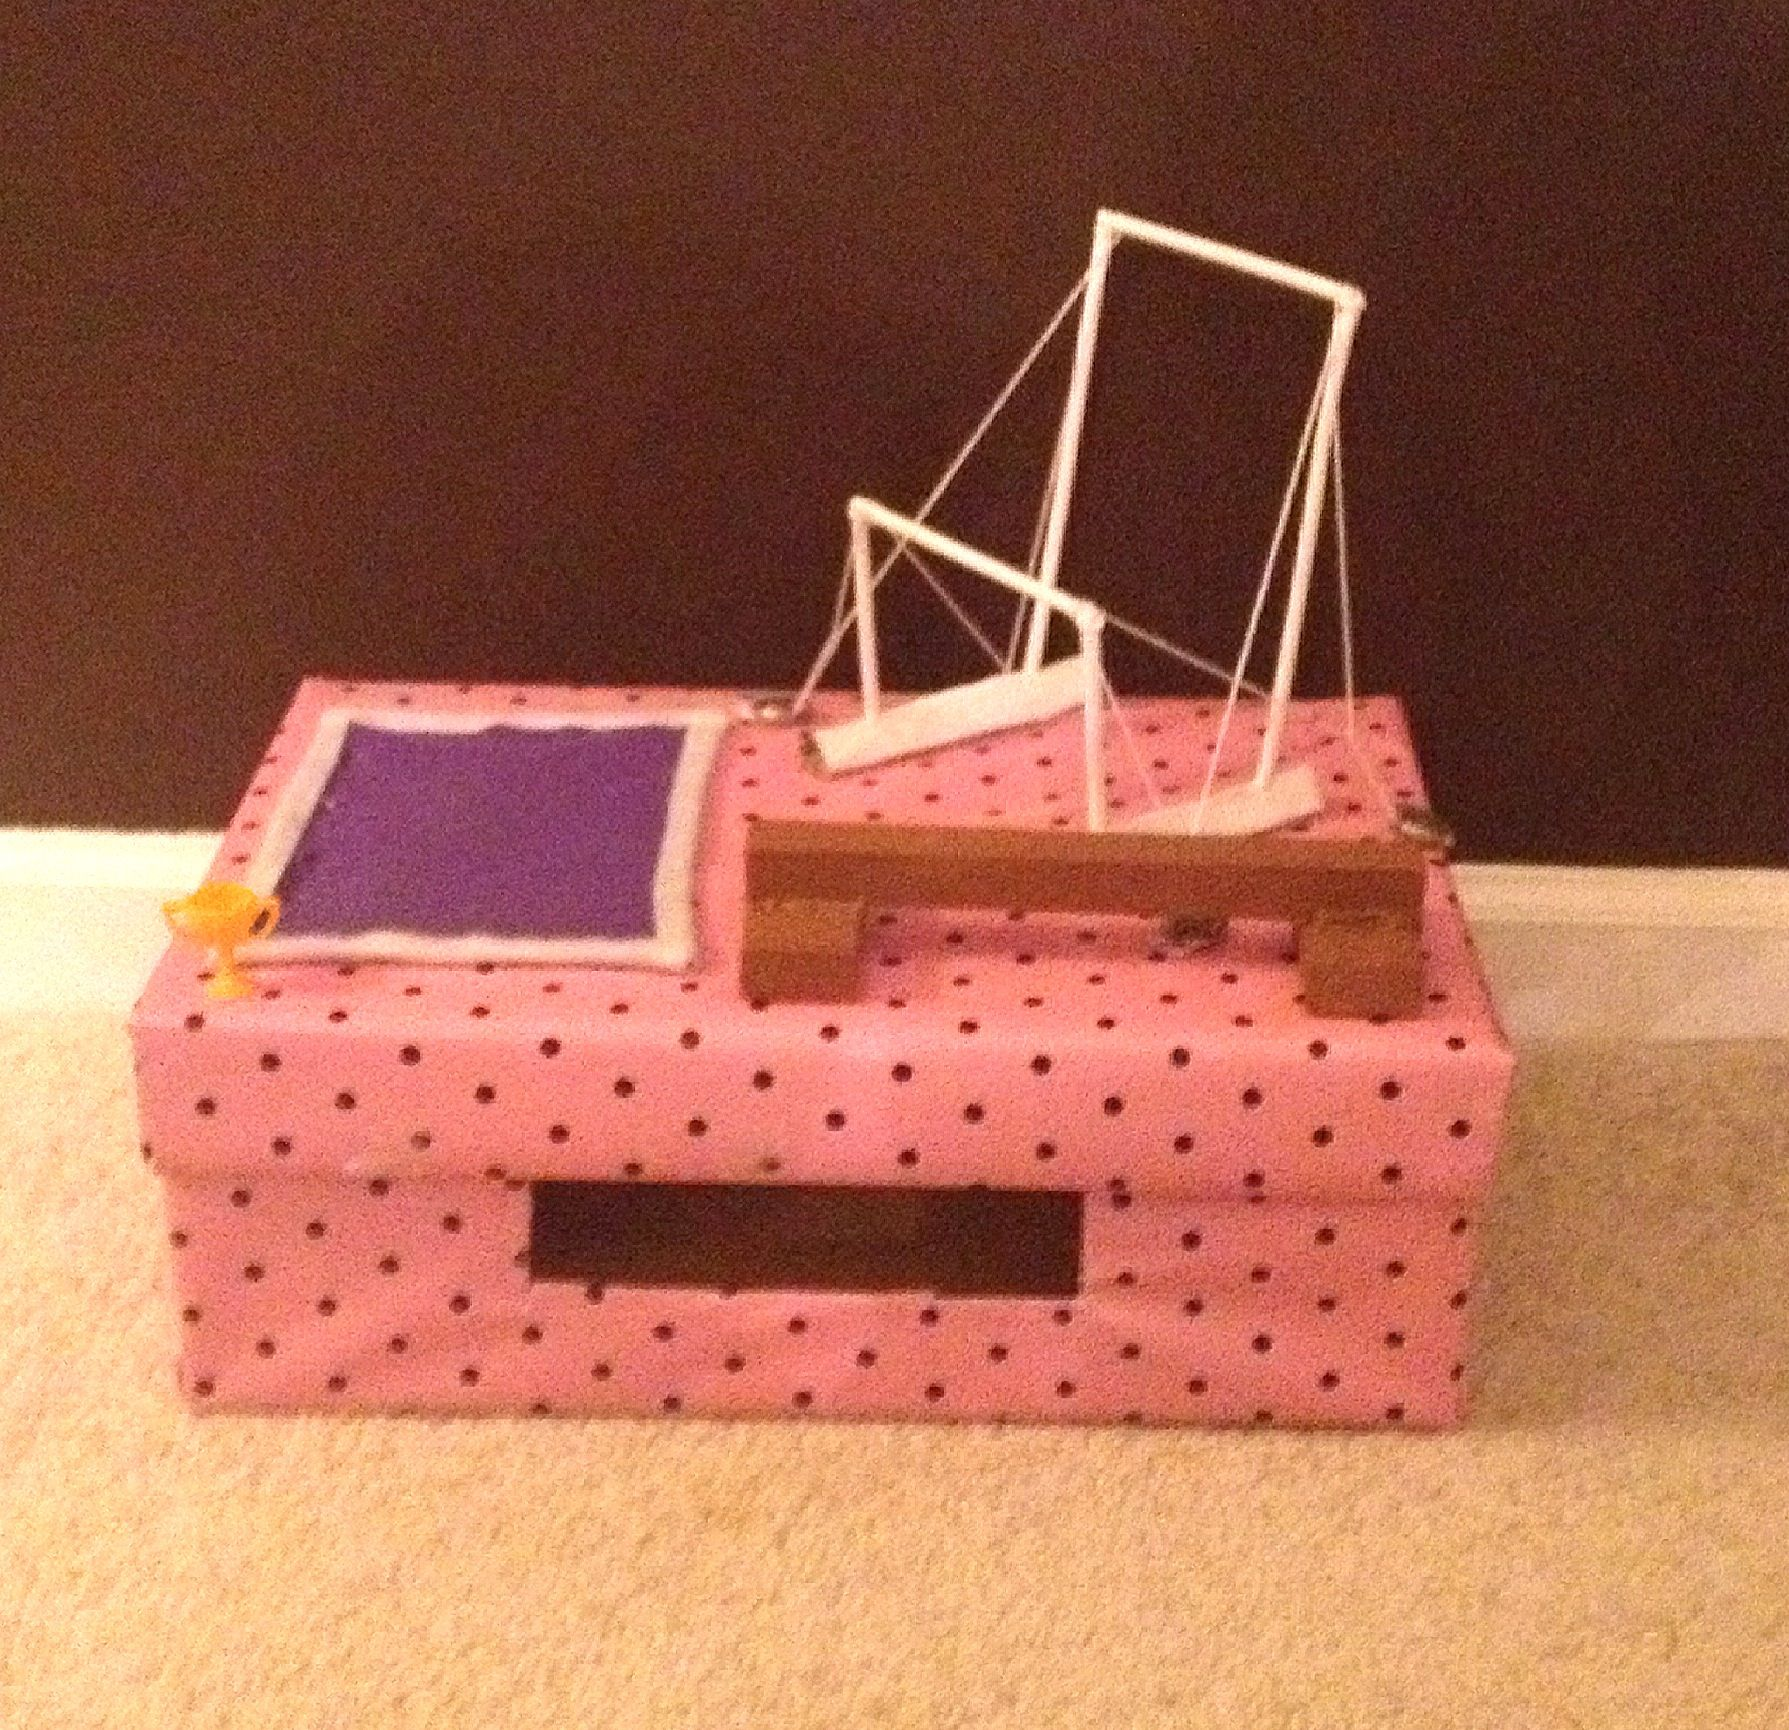 Fabulous Valentines Day Boxes Lesson Plan Shopkins Valentines Day Boxes Our Gymnastics Med Day Includes Barsbut We Have Room A Our Gymnastics Med Day Includes inspiration Valentines Day Boxes